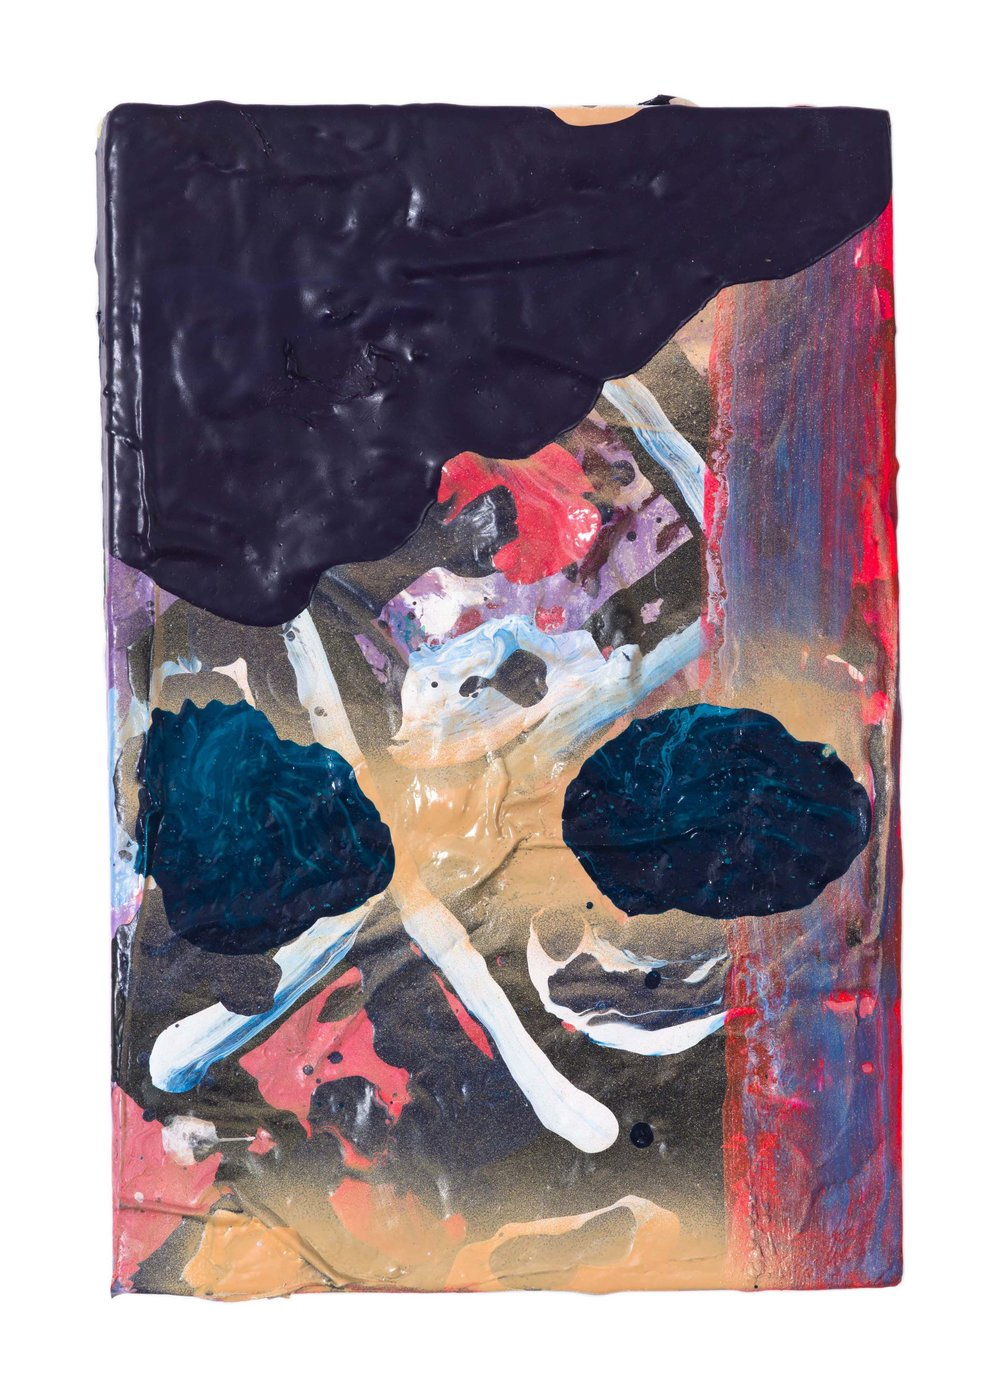 Drew Beattie and Ben Shepard  Poverty and Progress   acrylic and collage on used book 2016 8 ¼ x 5 ½ inches